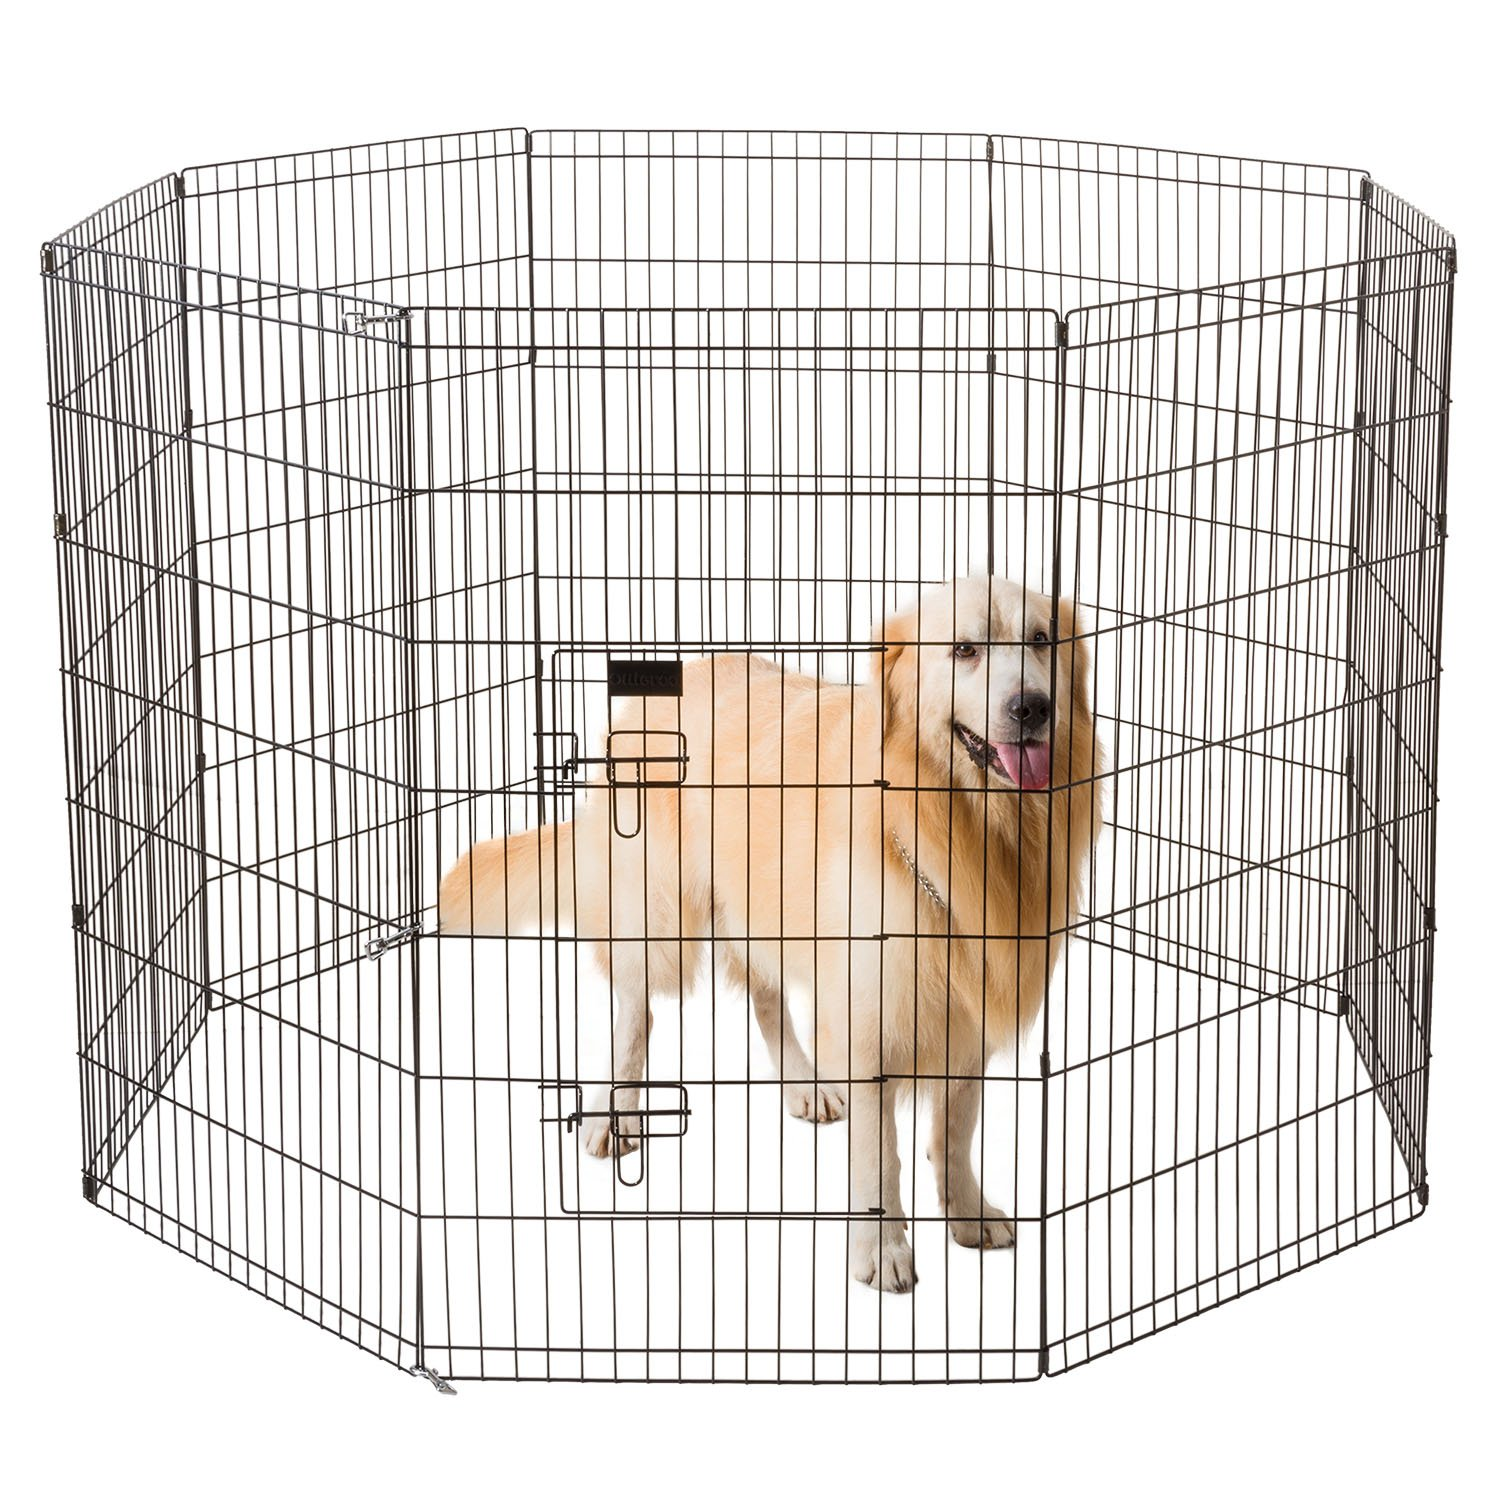 Ollieroo Dog Playpen Exercise Pen Cat Fence Pet Outdoor Indoor Cage 8 Panel Black E-coat Small (24'' W x 42'' H)